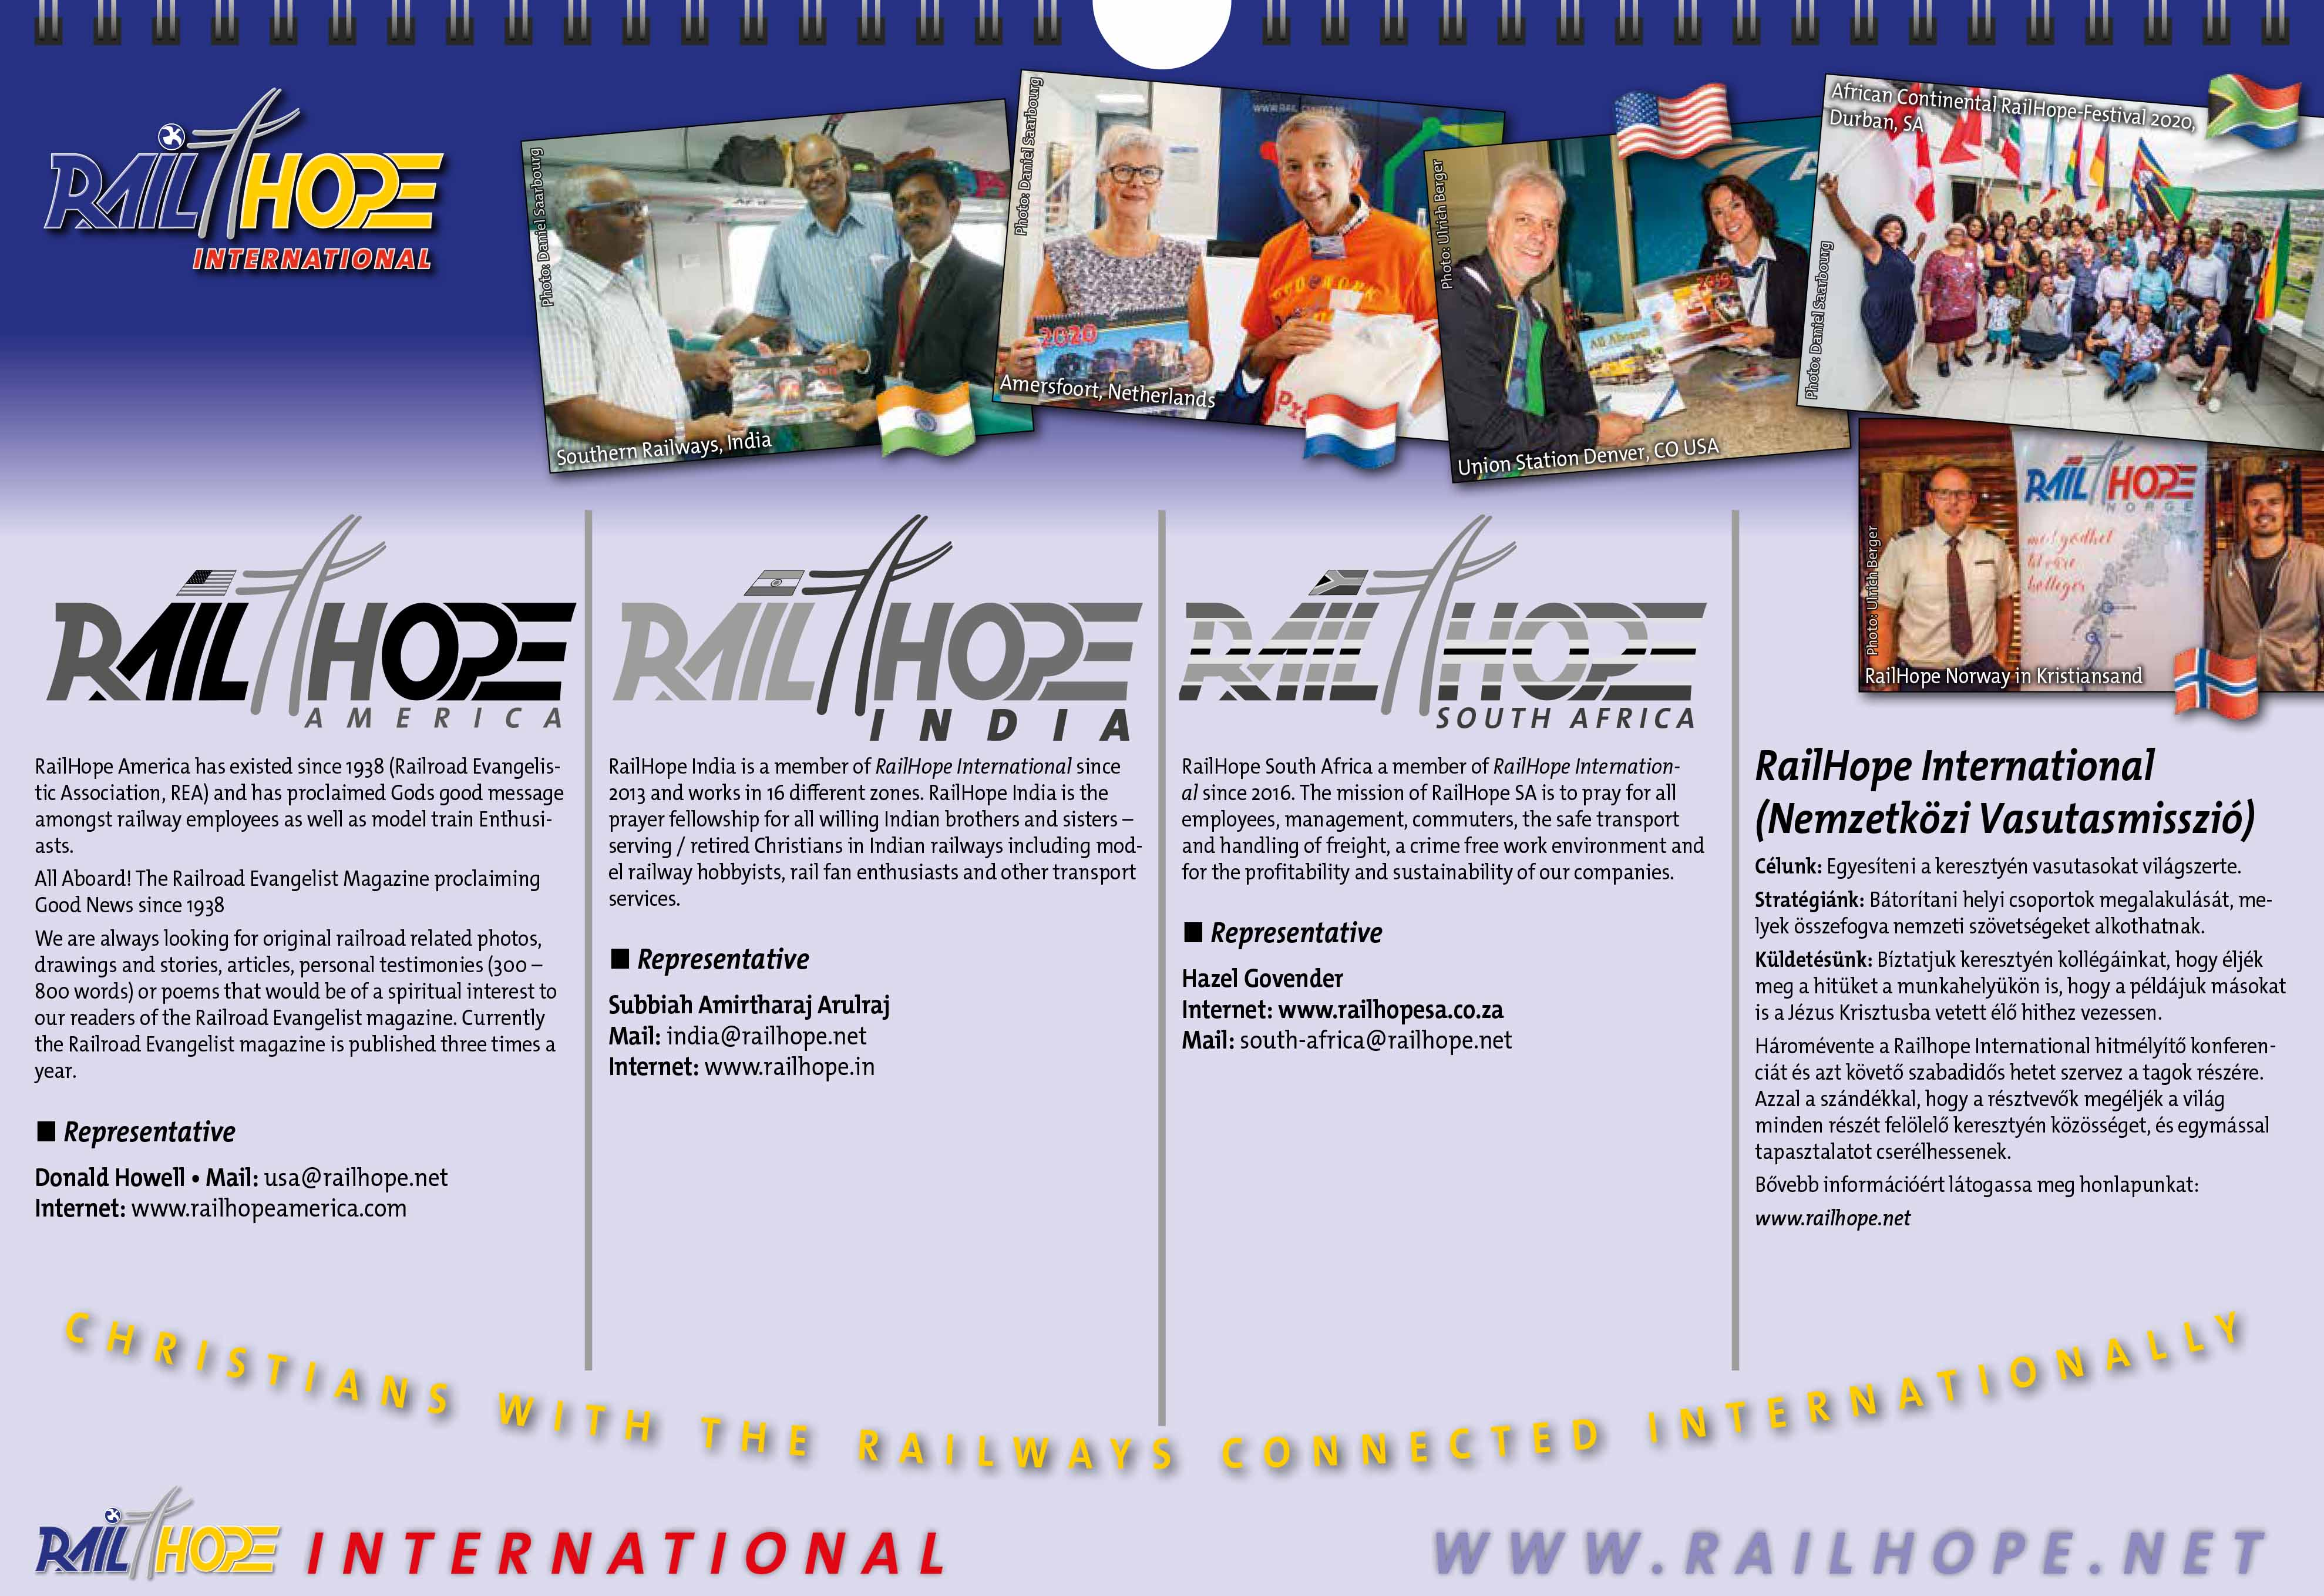 RailHope International